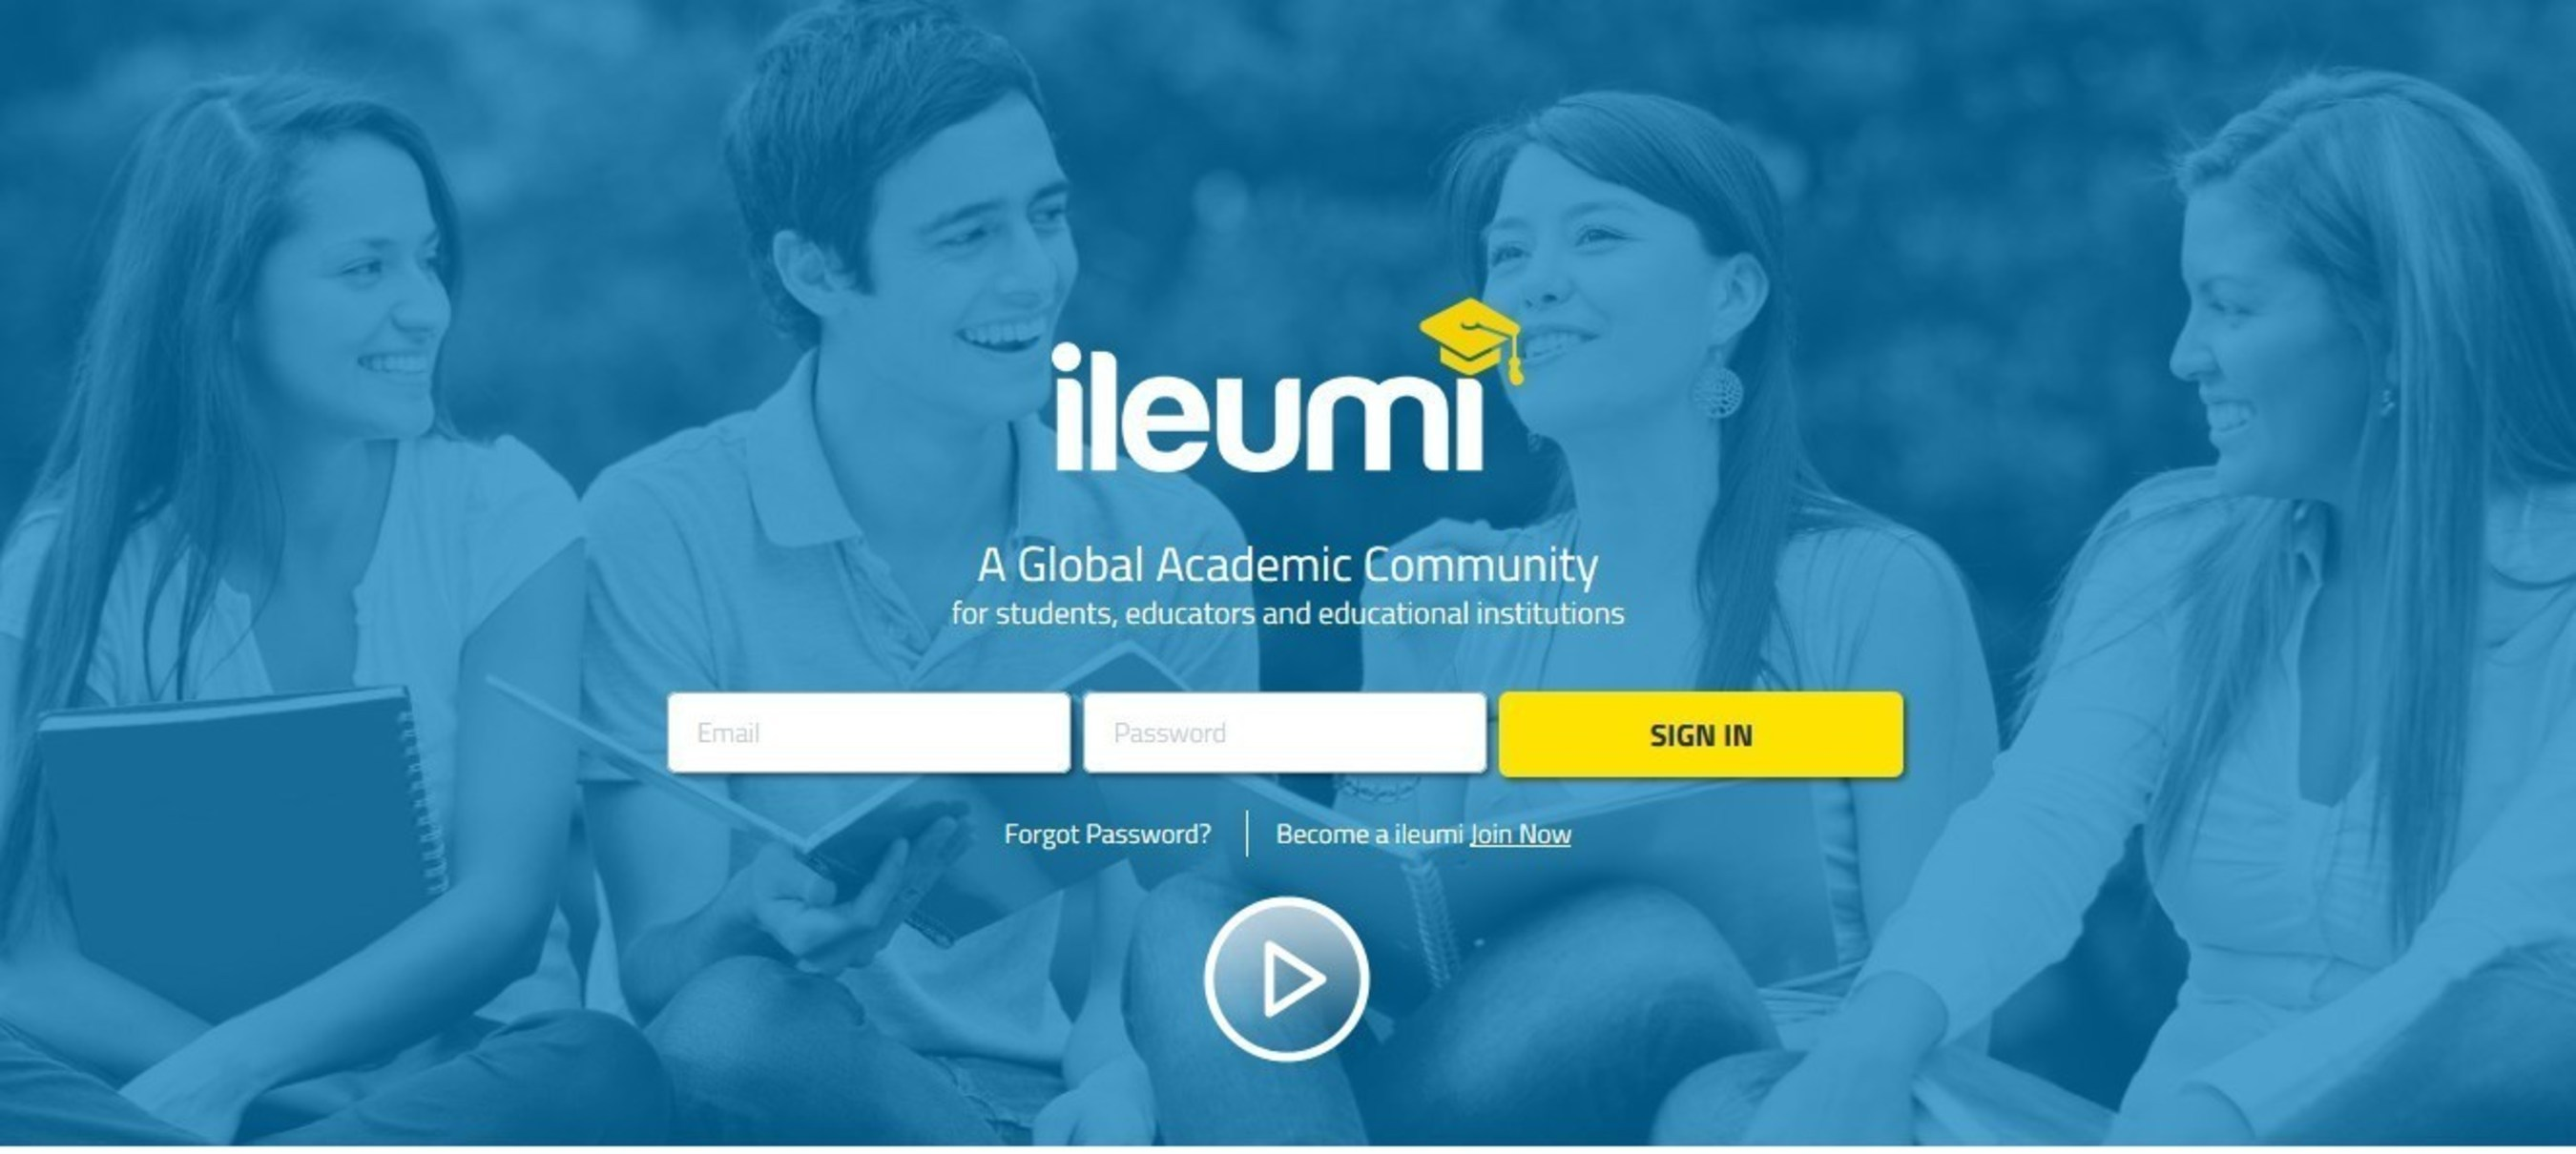 Ileumi Announces Launch of Academic Networking Platform Connecting Students, Educators and Institutions Worldwide